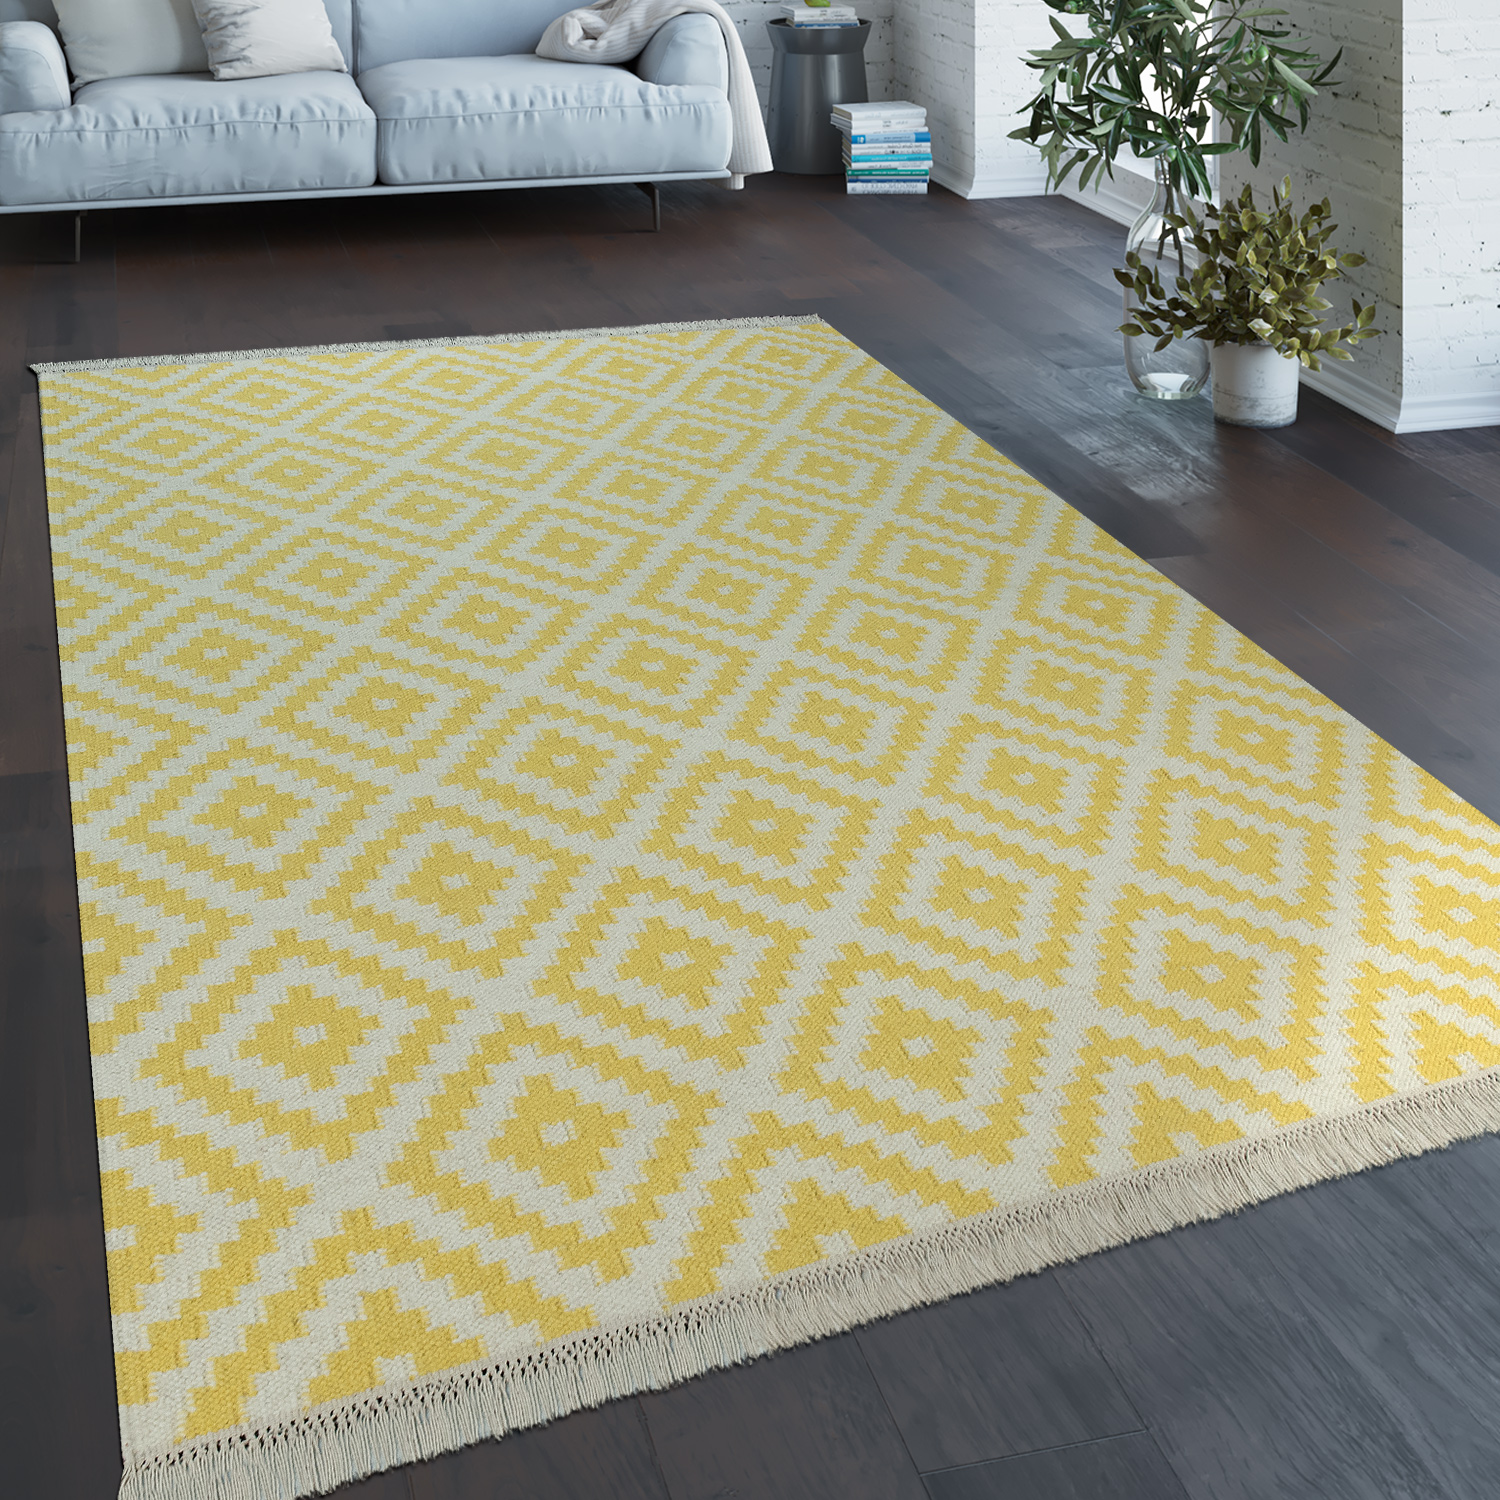 Hand-Woven Trend Rug Modern Moroccan Design Fringes In White Yellow